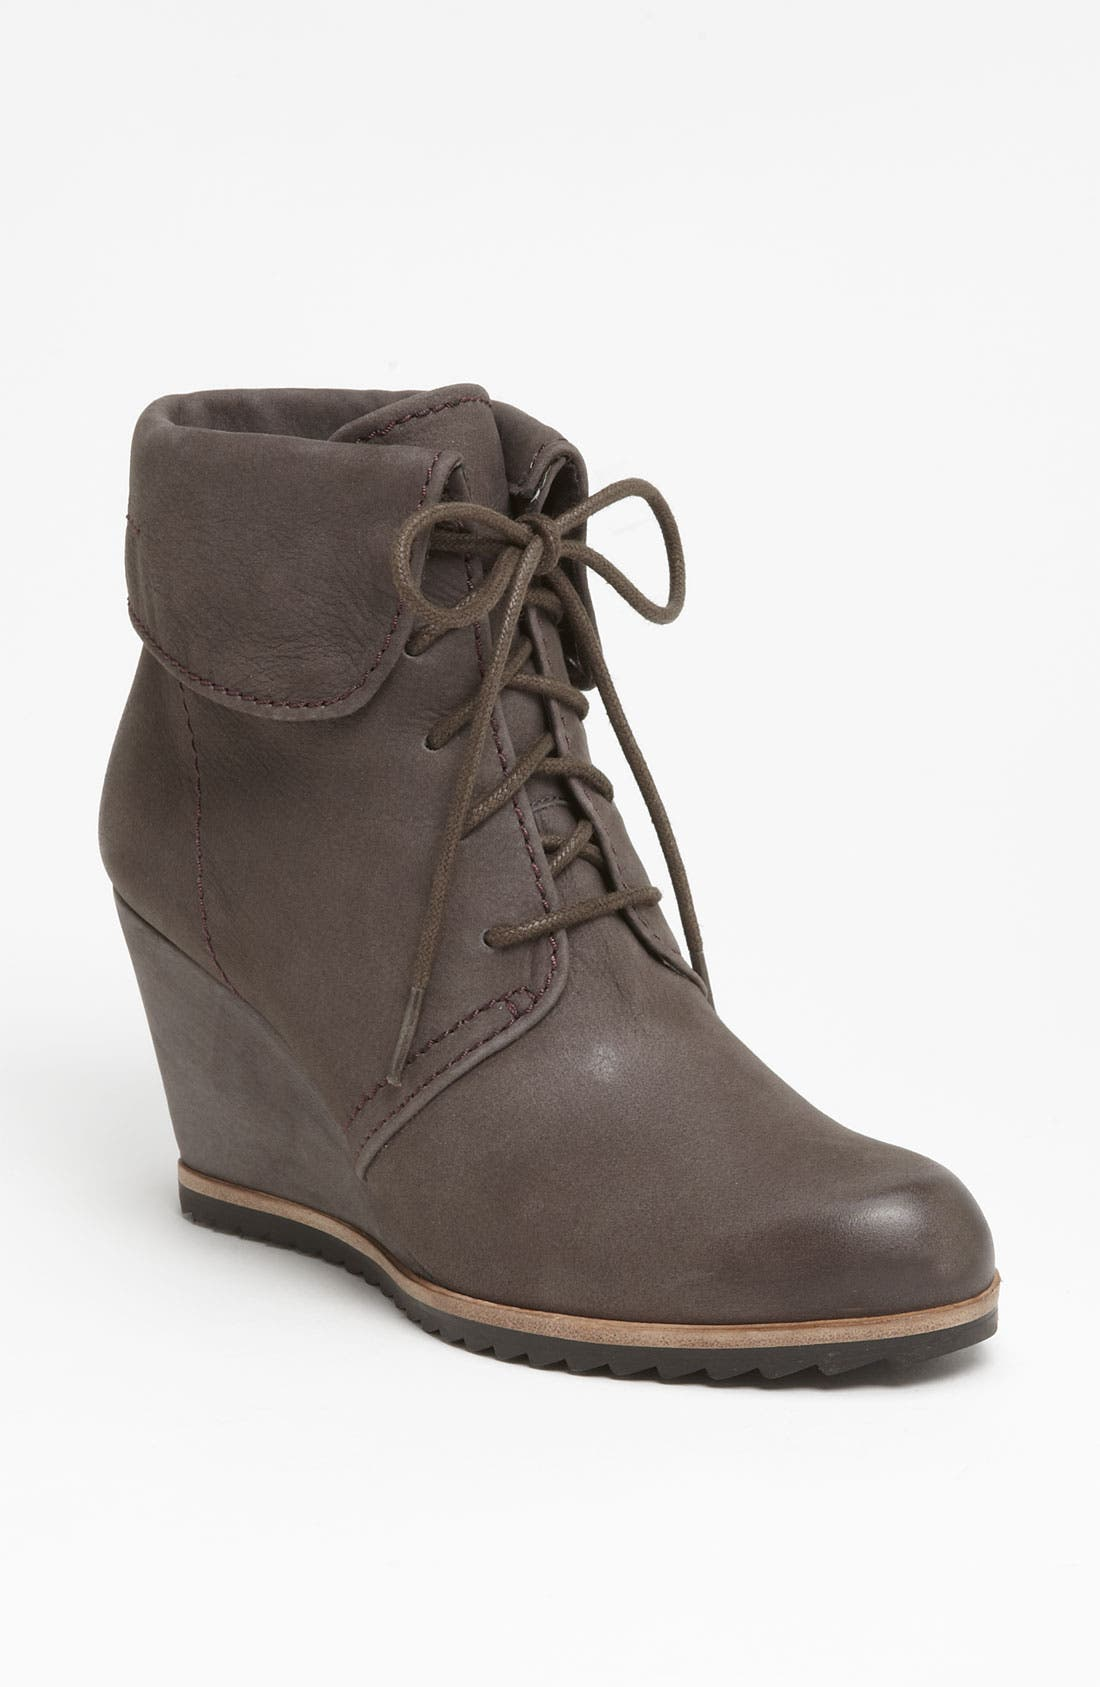 Main Image - Biala 'Ashby' Collared Wedge Bootie